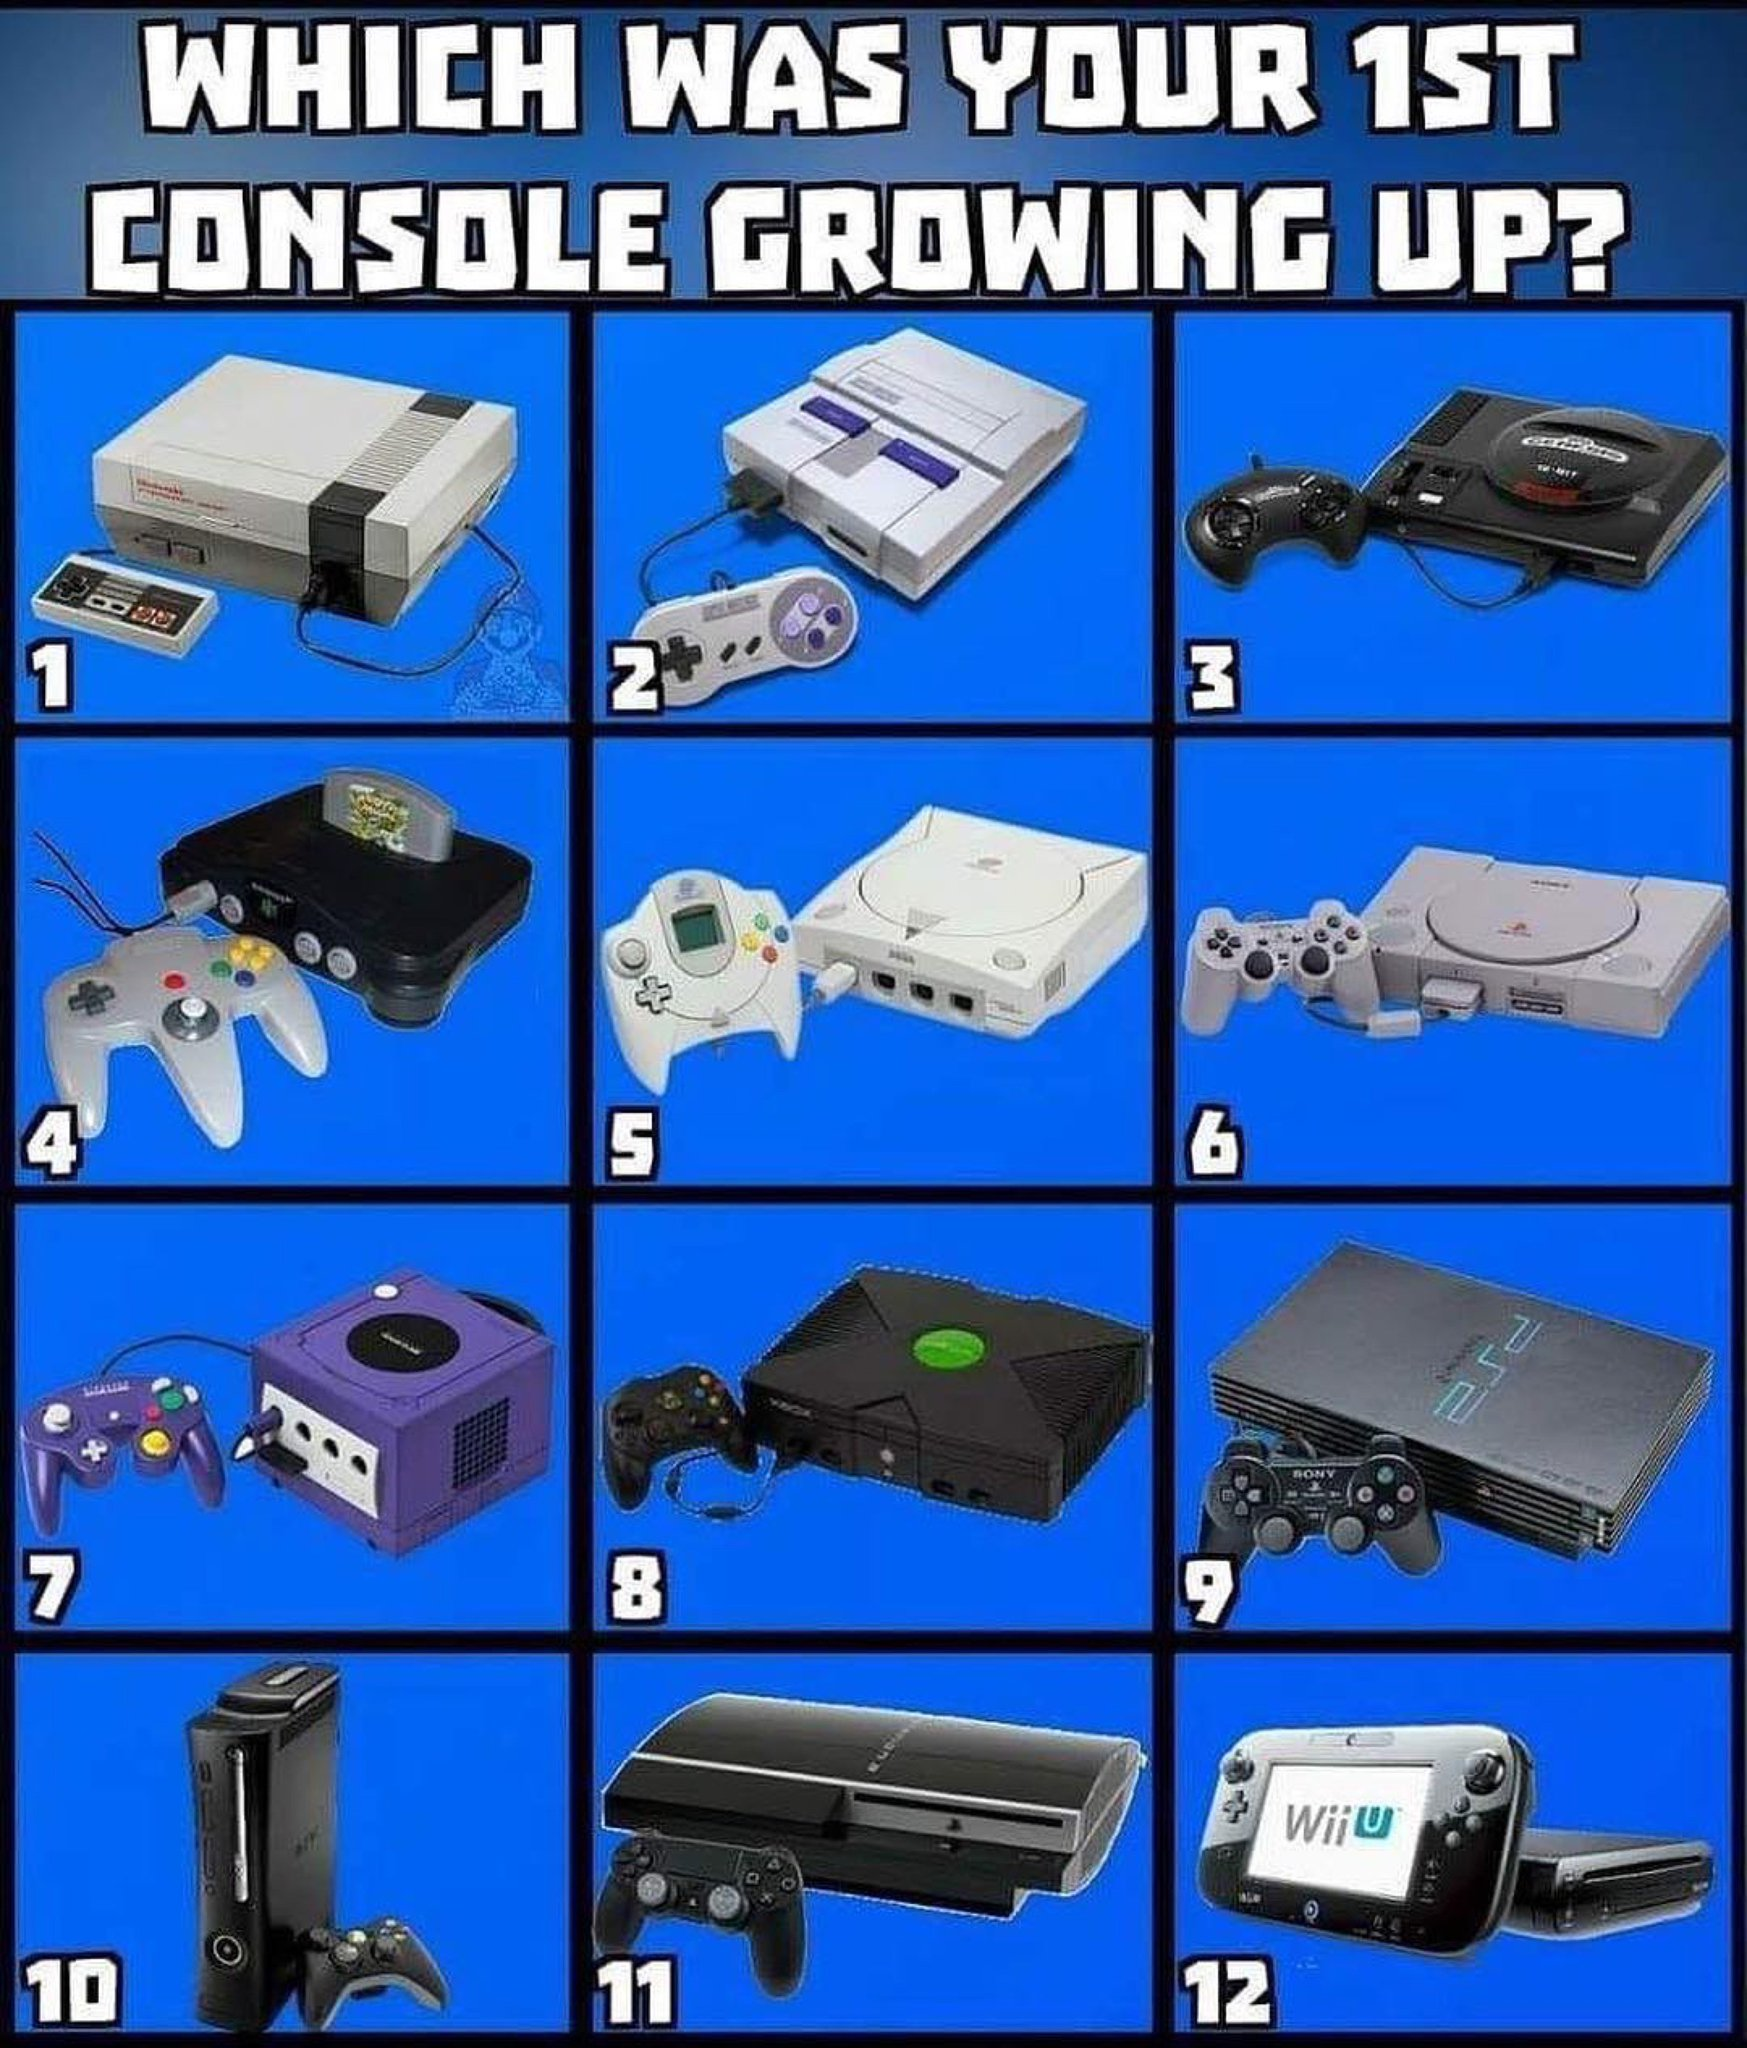 Can You Play Fortnite On A Ps2 Hoolyville Music On Twitter Gaming Love Fun Music Win Fortnite Xbox Laptop N64 Retrogames Ps1 Ps2 Nintendo Xbox Playstation Xbone Https T Co 5w3zzjbbkw